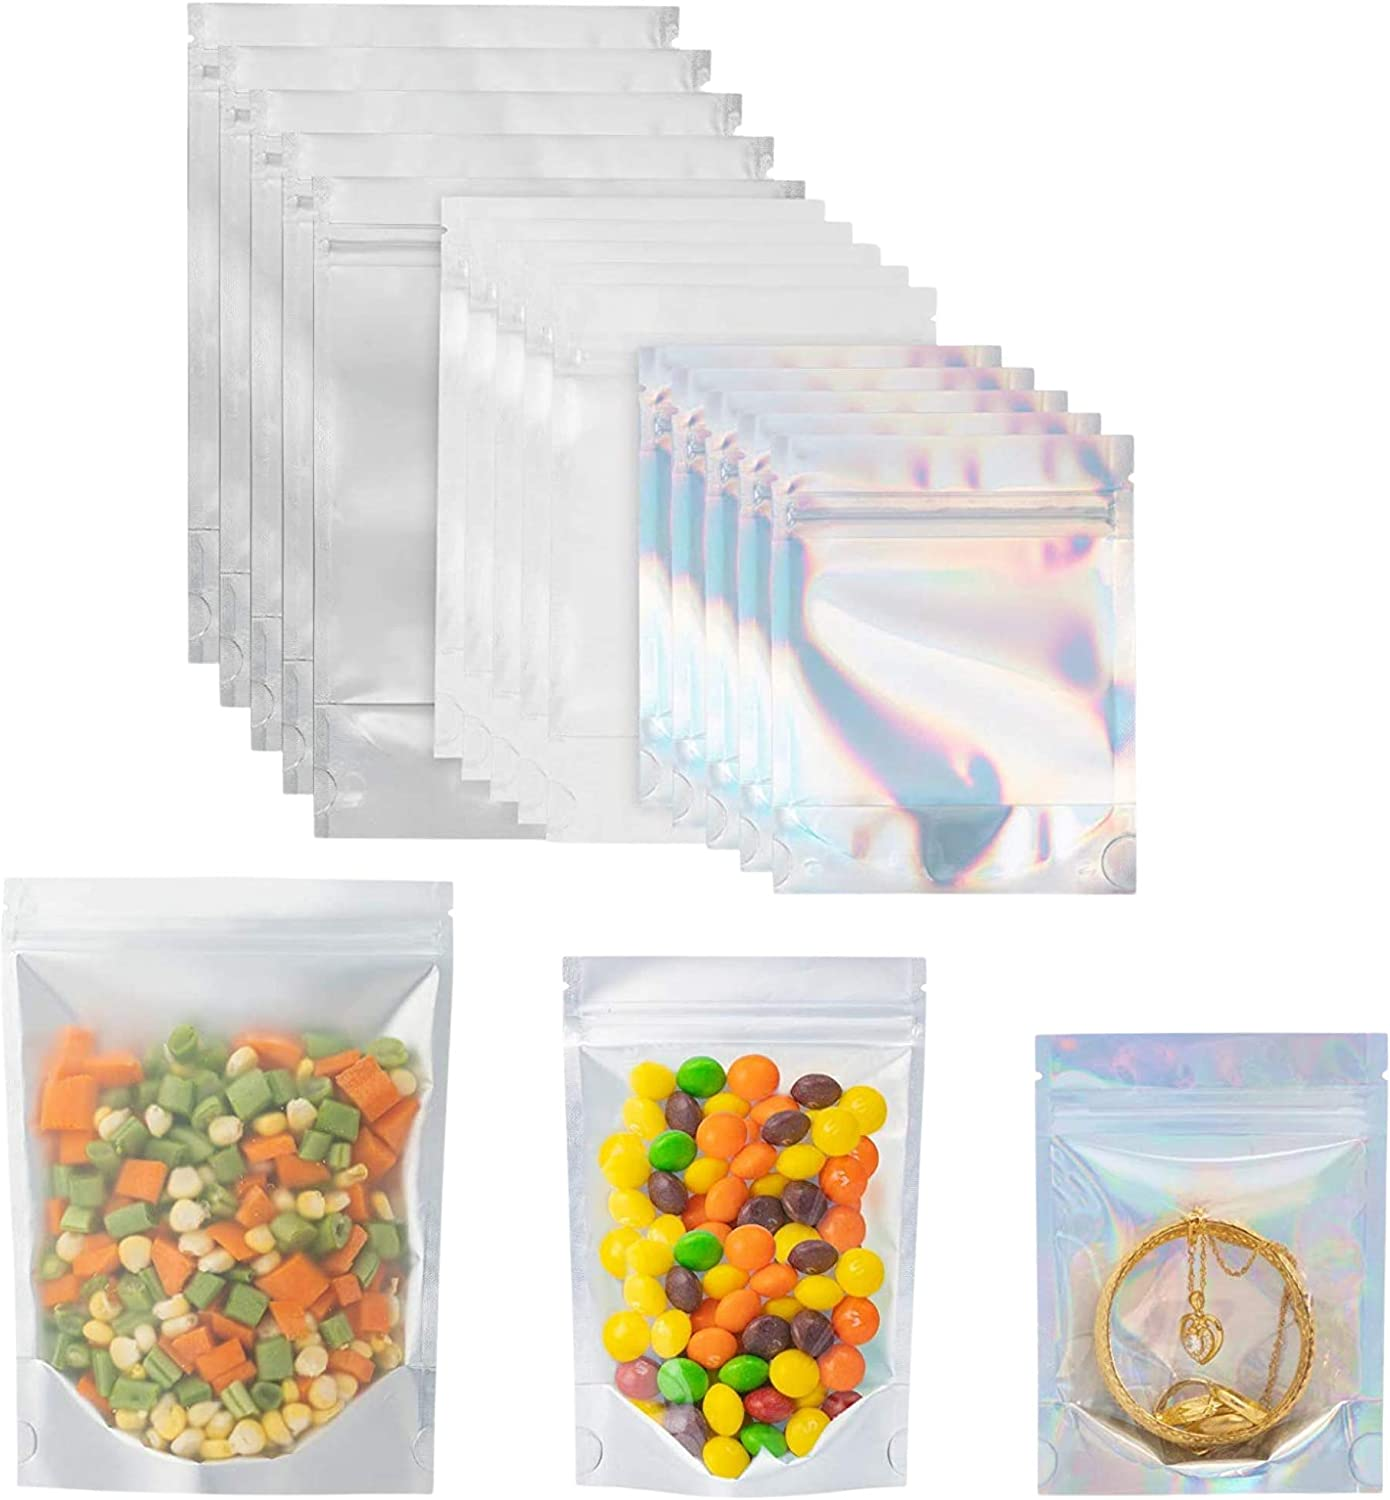 BKEN Aluminum Foil Mylar Bags for Food Storage 120 Pieces Resealable and Reusable Smell Proof Bags with Clear Front Pocket for Coffee Beans, Spices, Candy Packaging, Nuts